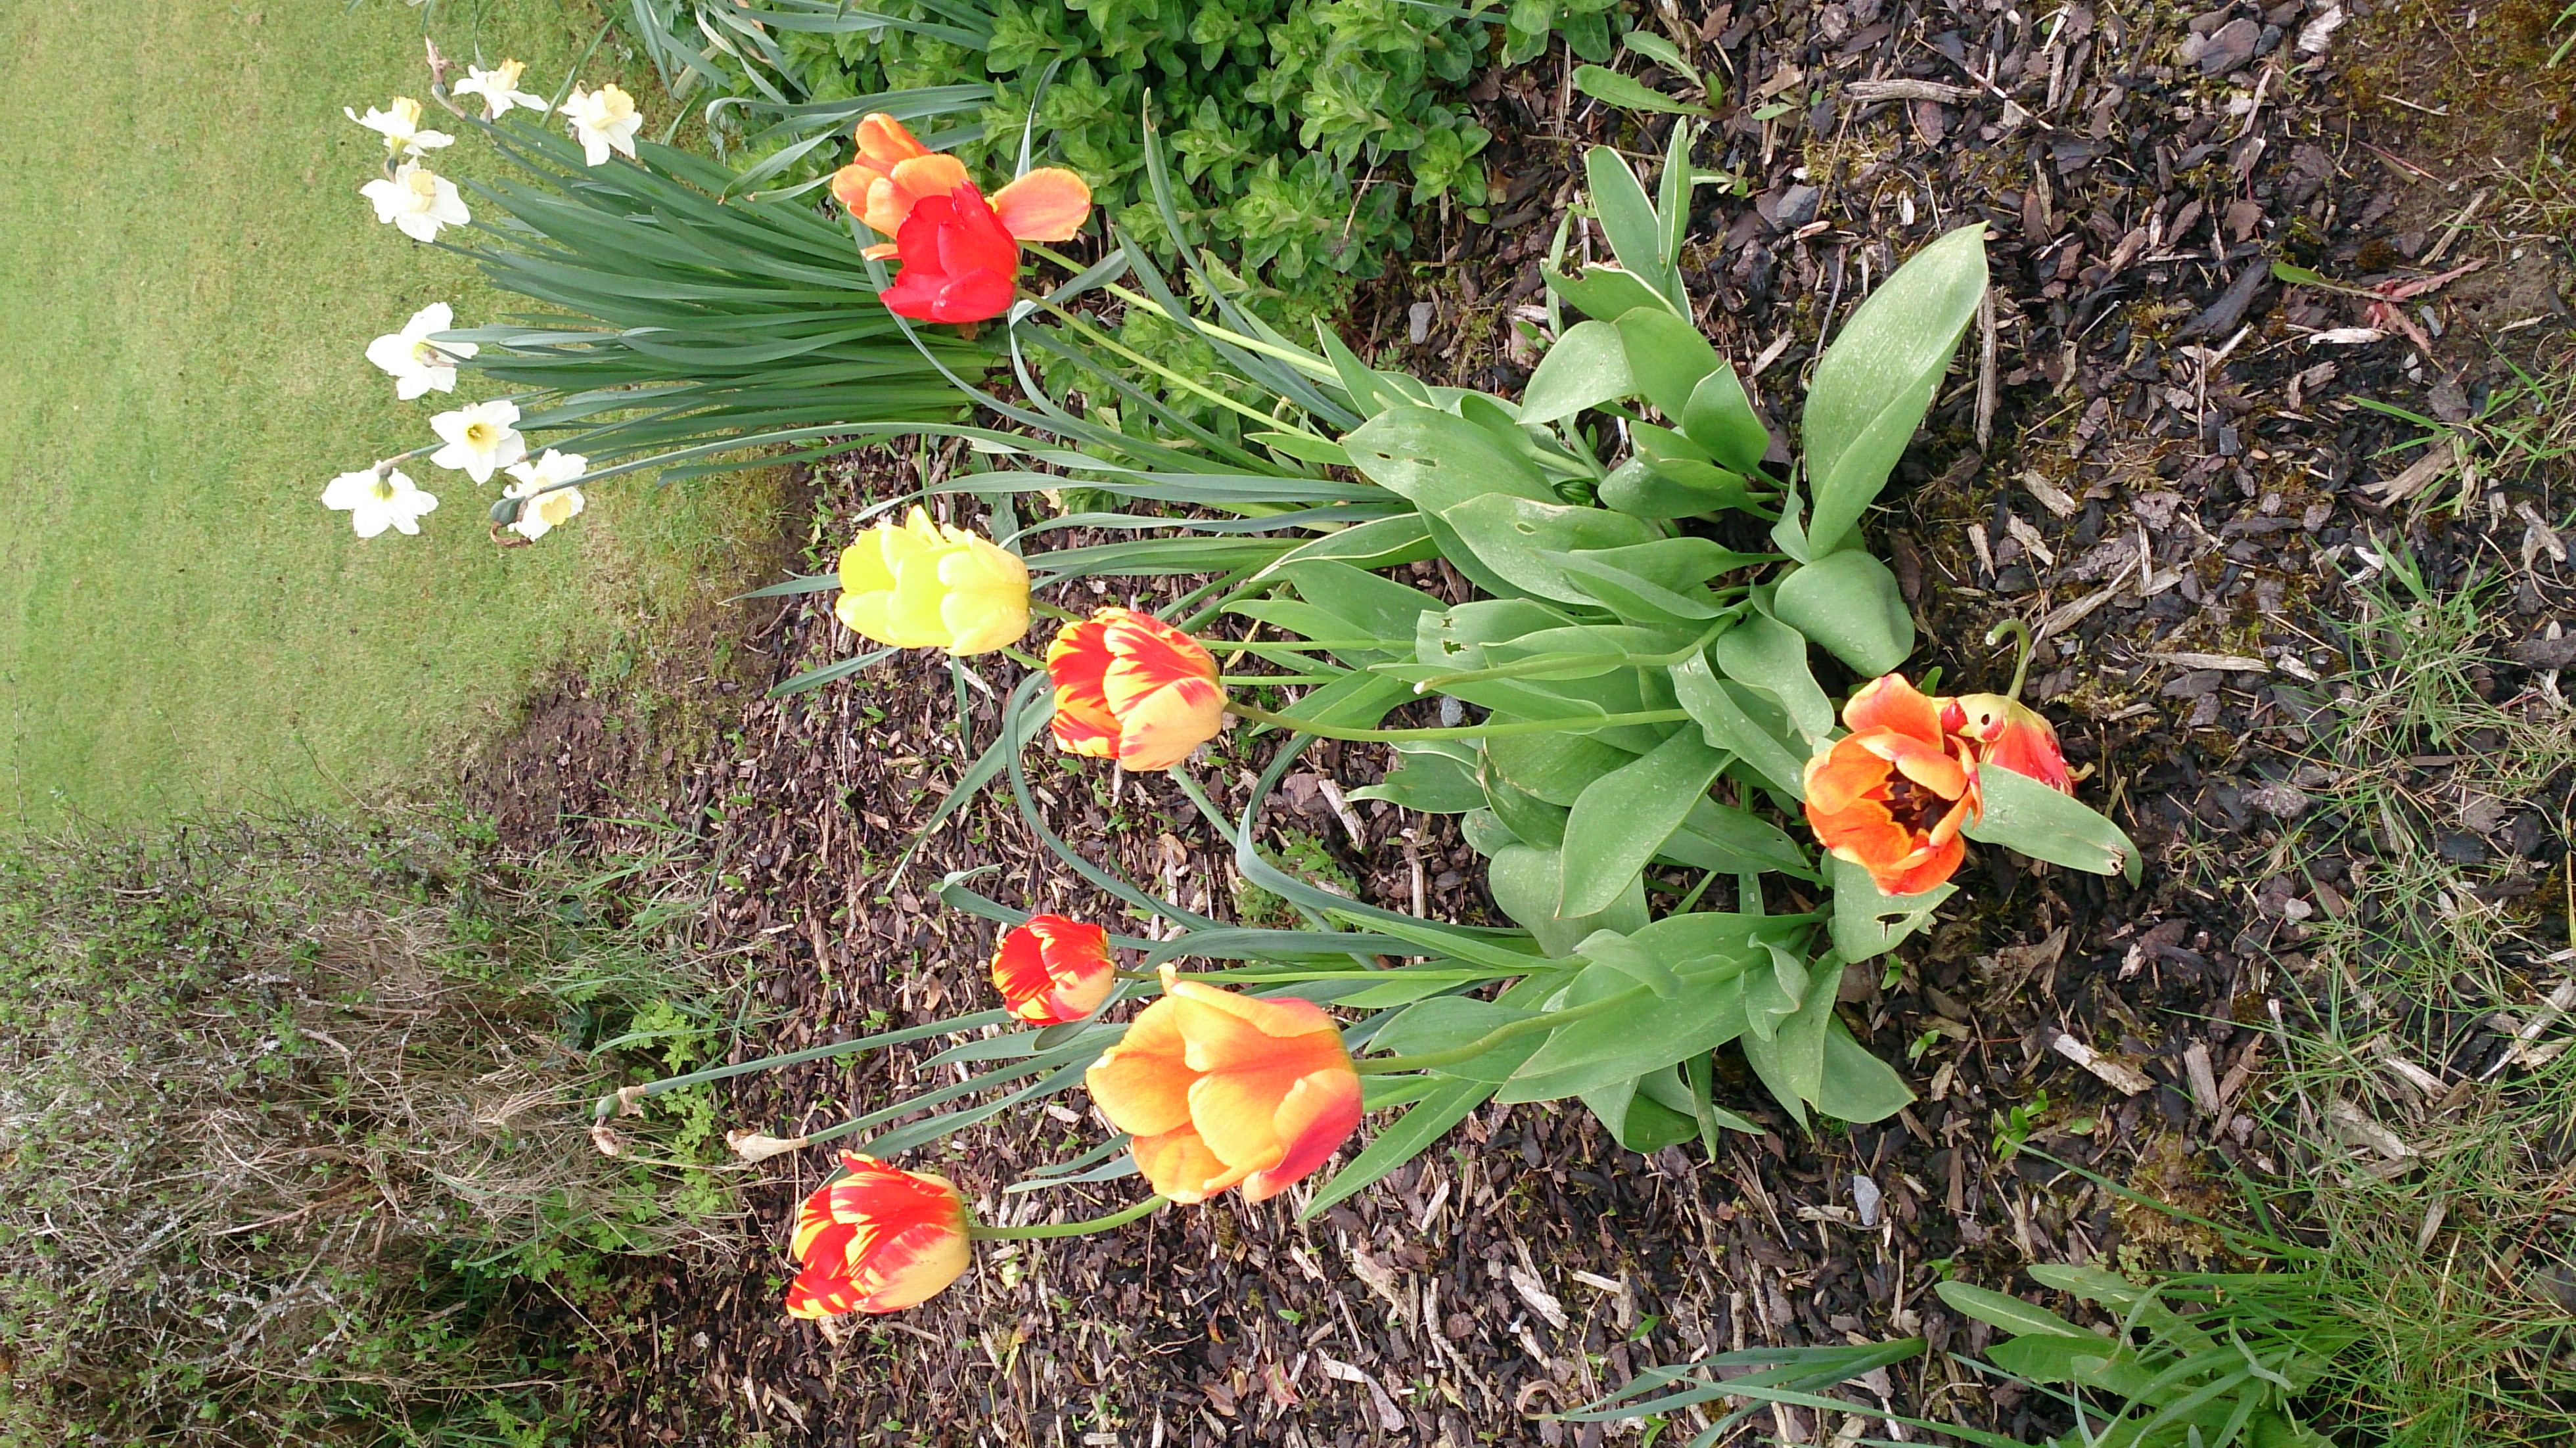 Reminds me of home in Haarlem! Tulips!